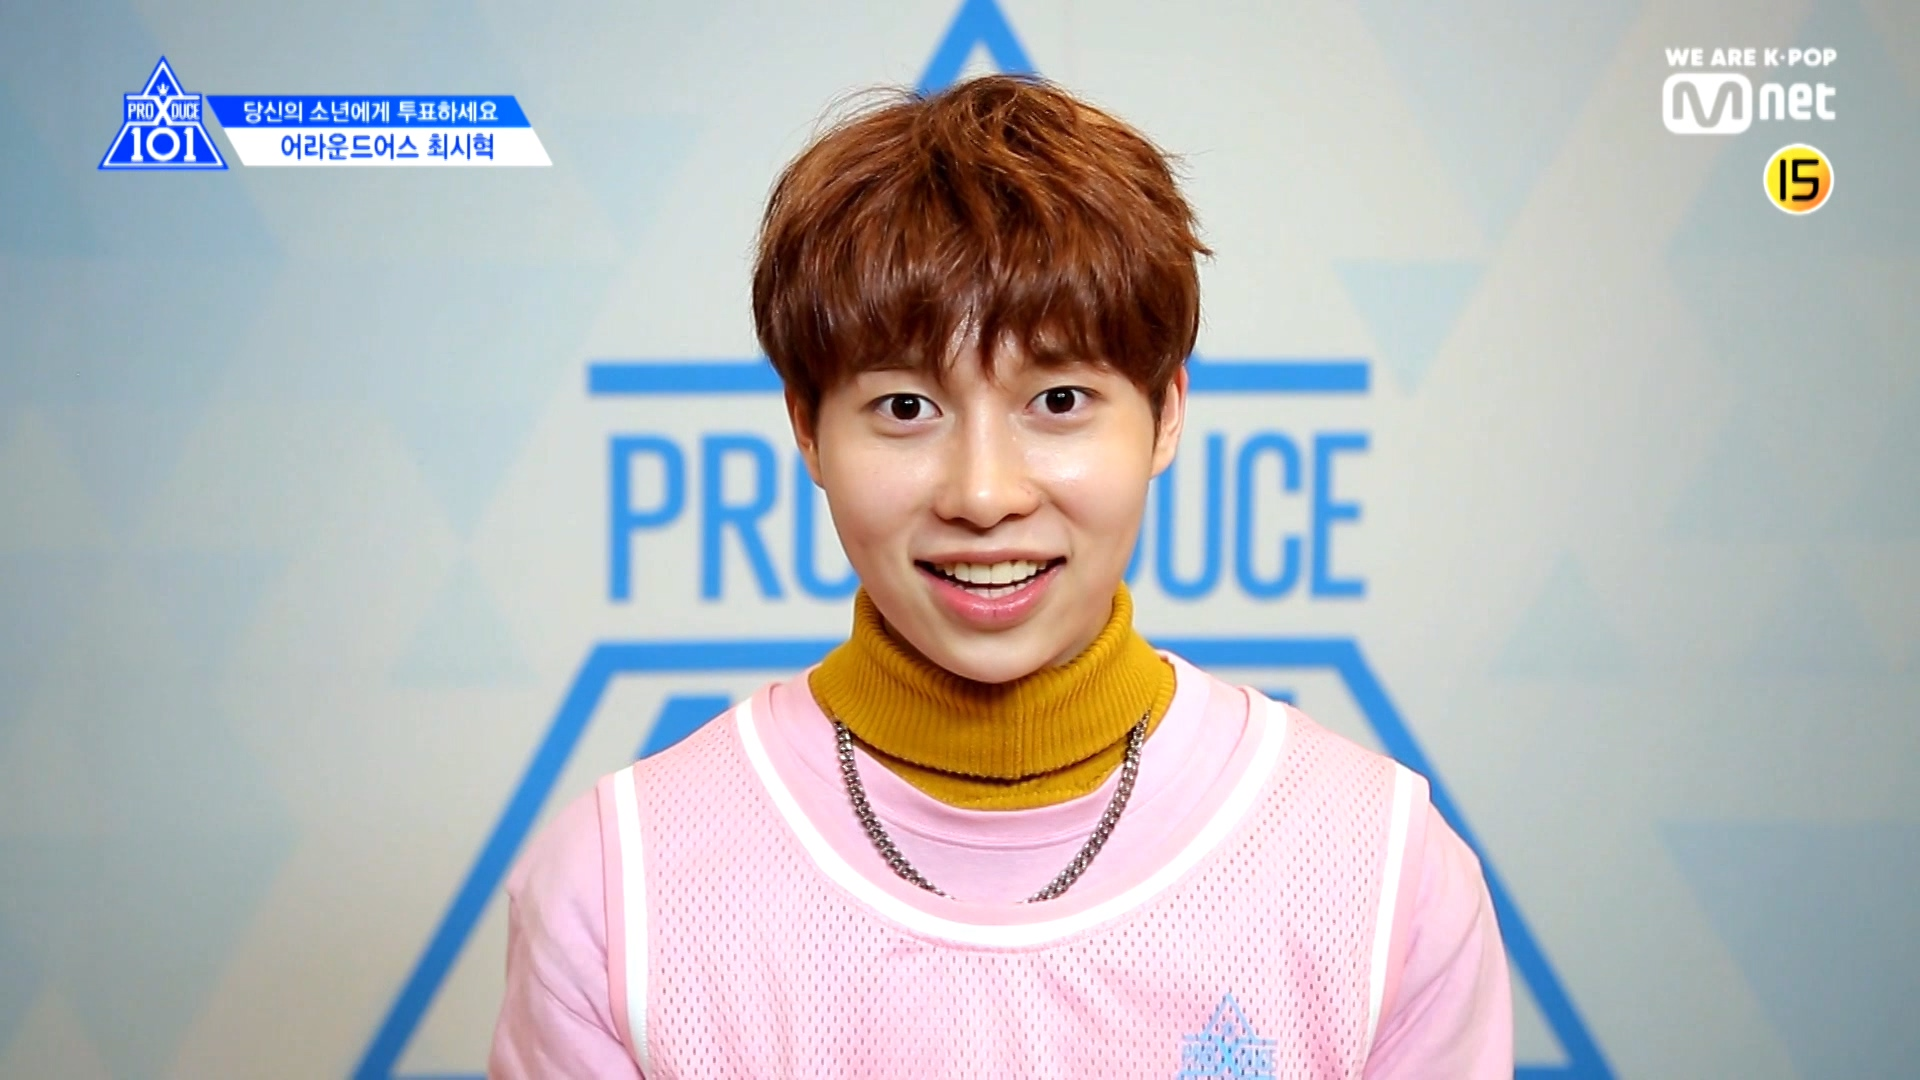 [PRODUCE X 101] EYE CONTACT CHALLENGE l CHOI SI HYUK(Around US)